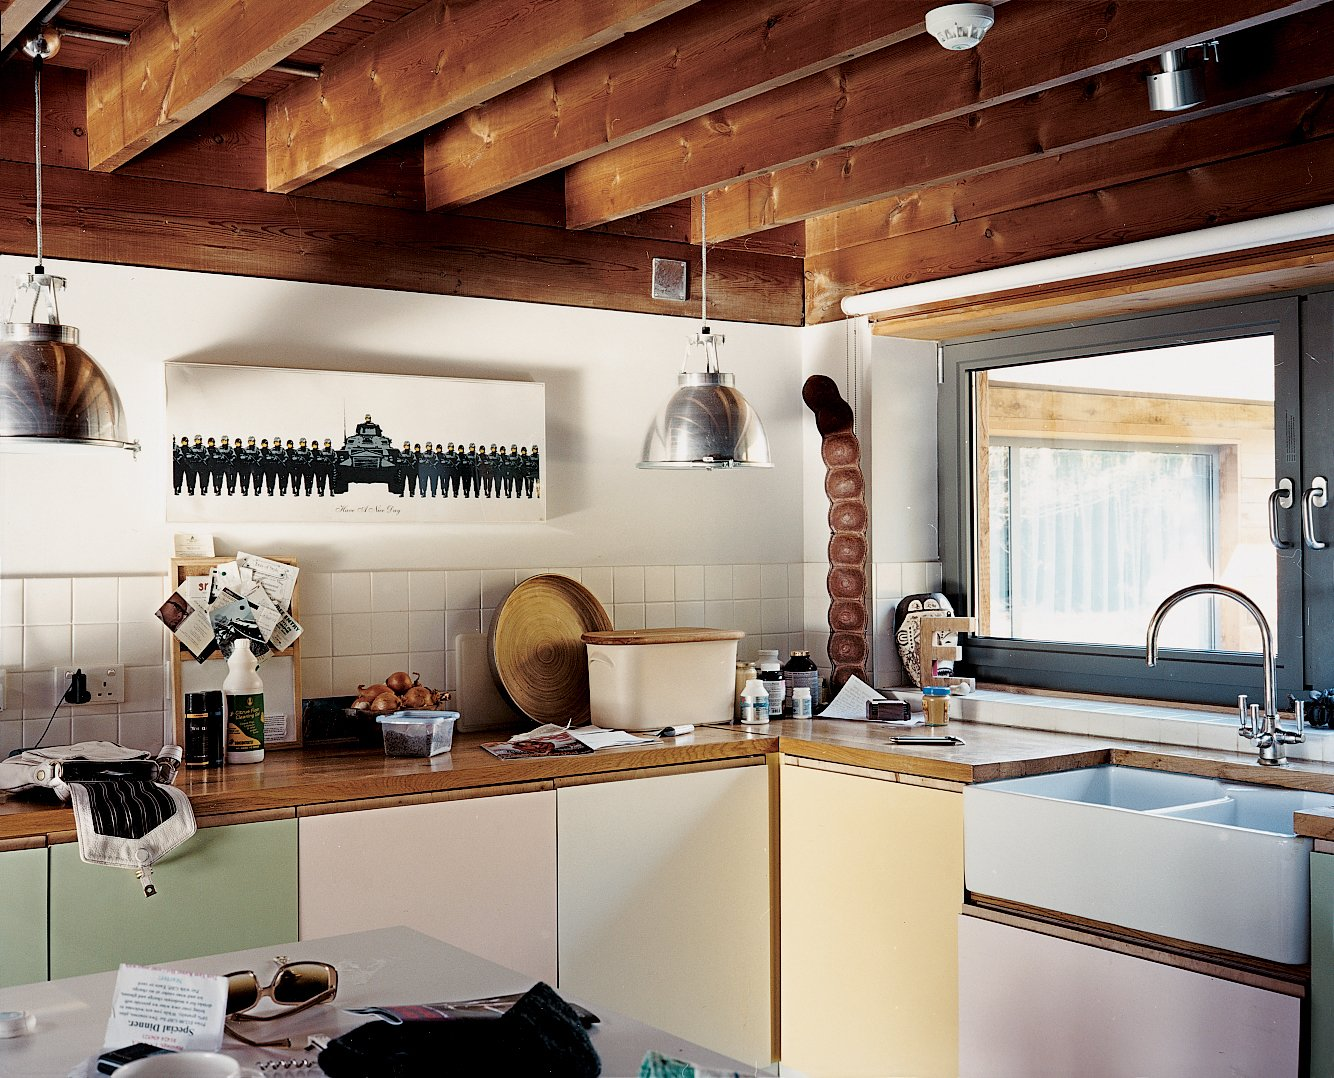 Kitchen The architects kept the low-beamed ceiling, retaining the house's English countryside charm. The kitchen features custom cabinetry designed by artist Neil Jolliffe. The couple purchased their Banksy prints from the artist's London gallery, Tom Tom.  Photo 3 of 7 in Heart of the Country